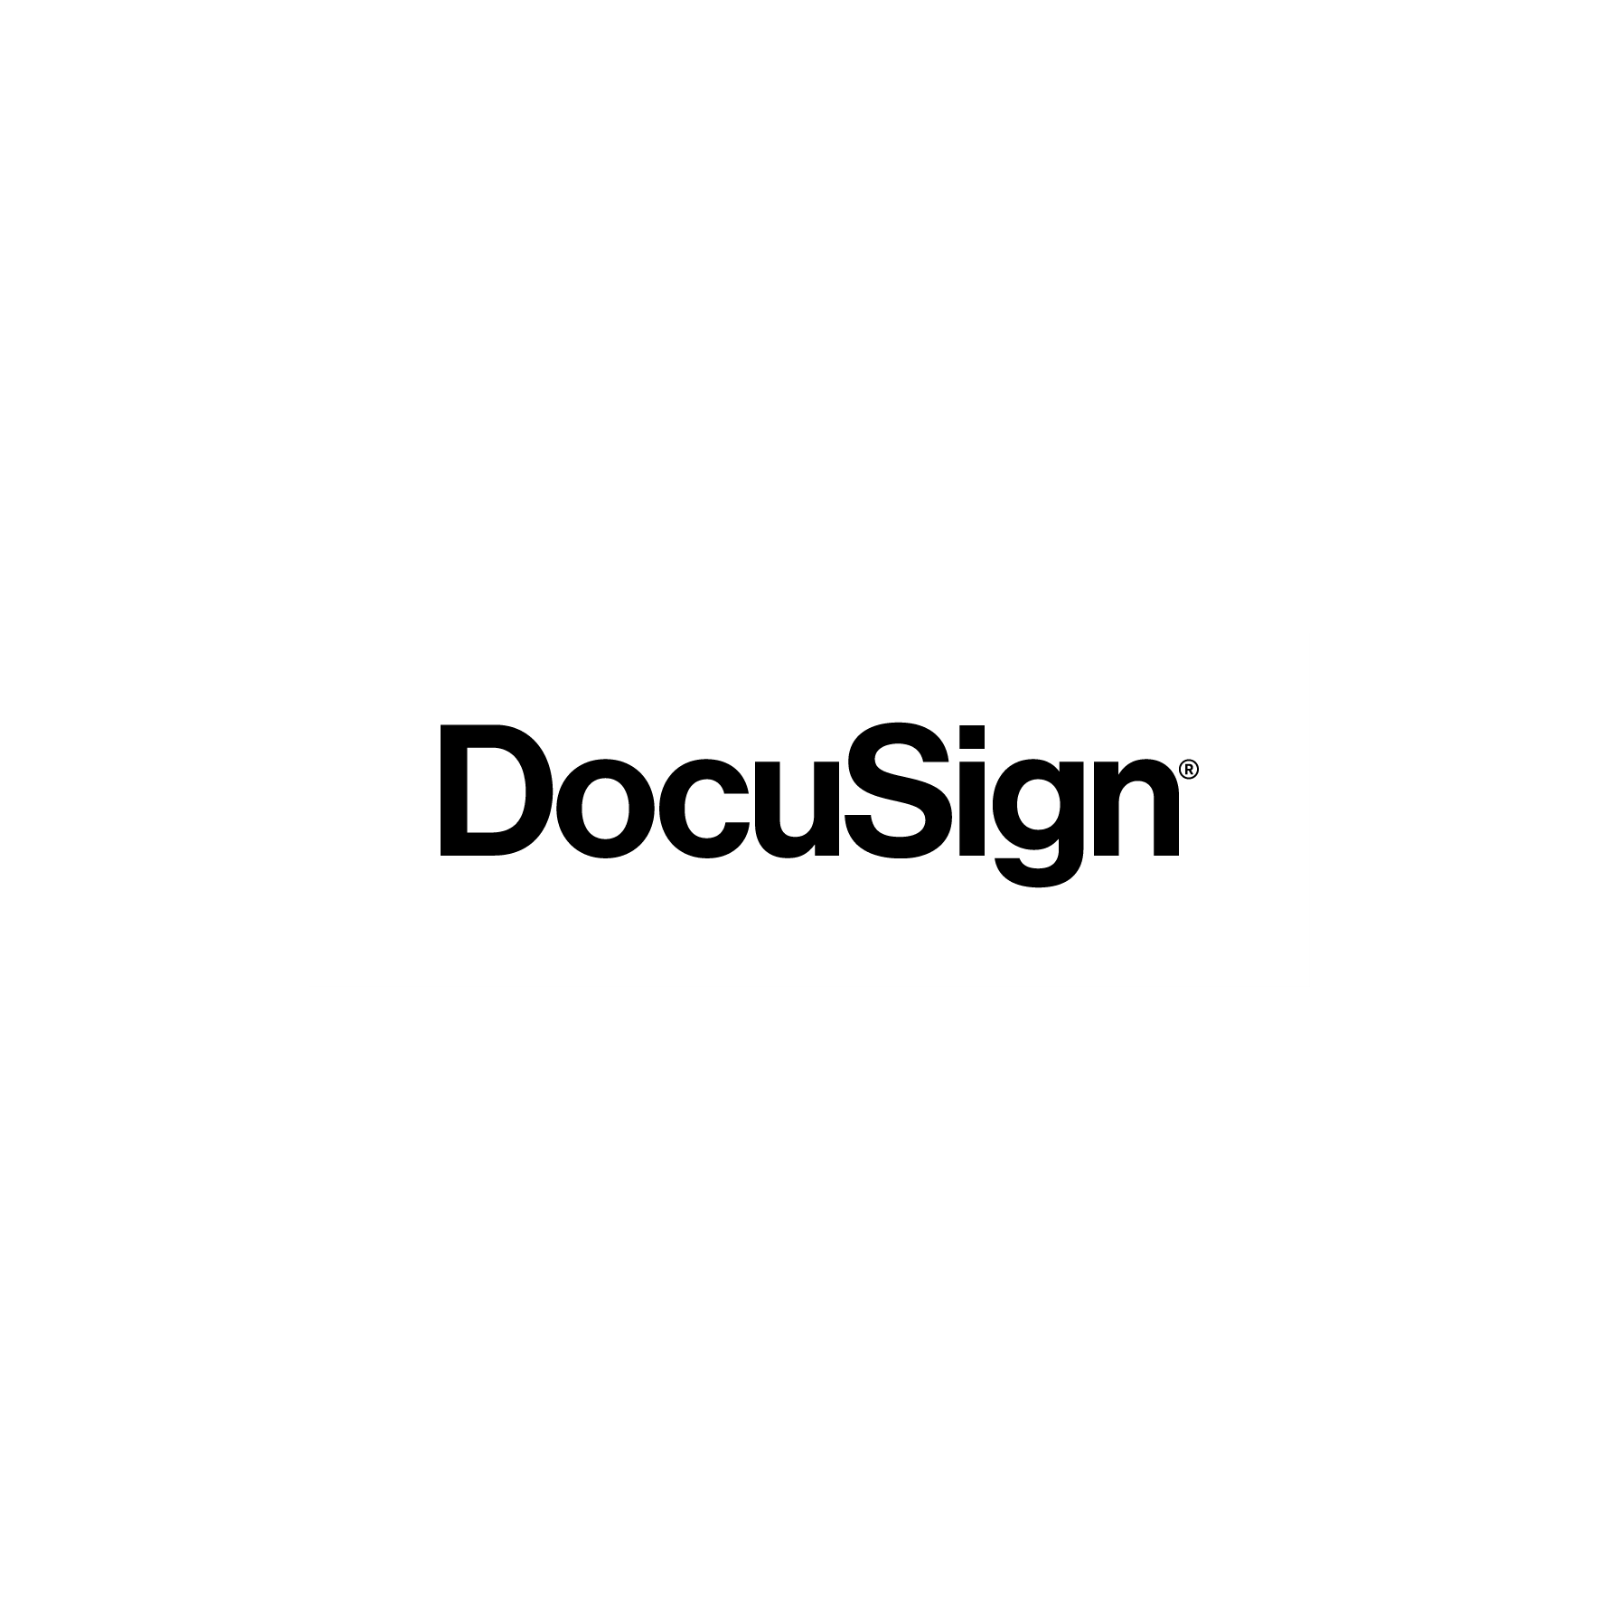 DocuSign TechSoup